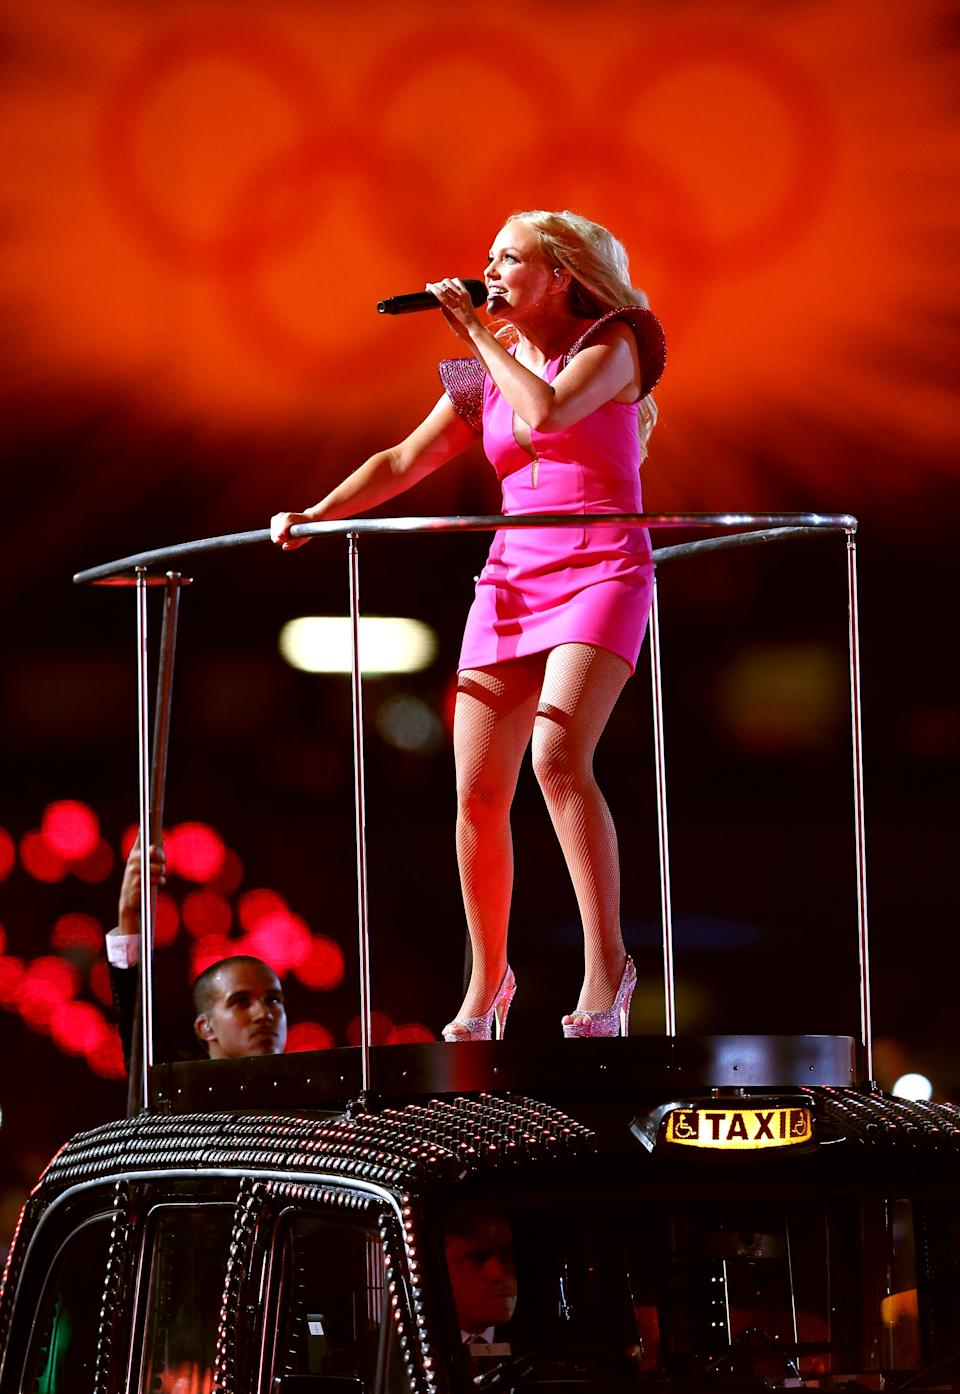 Emma Bunton of Spice Girls performs during the Closing Ceremony on Day 16 of the London 2012 Olympic Games at Olympic Stadium on August 12, 2012 in London, England. (Photo by Scott Heavey/Getty Images)